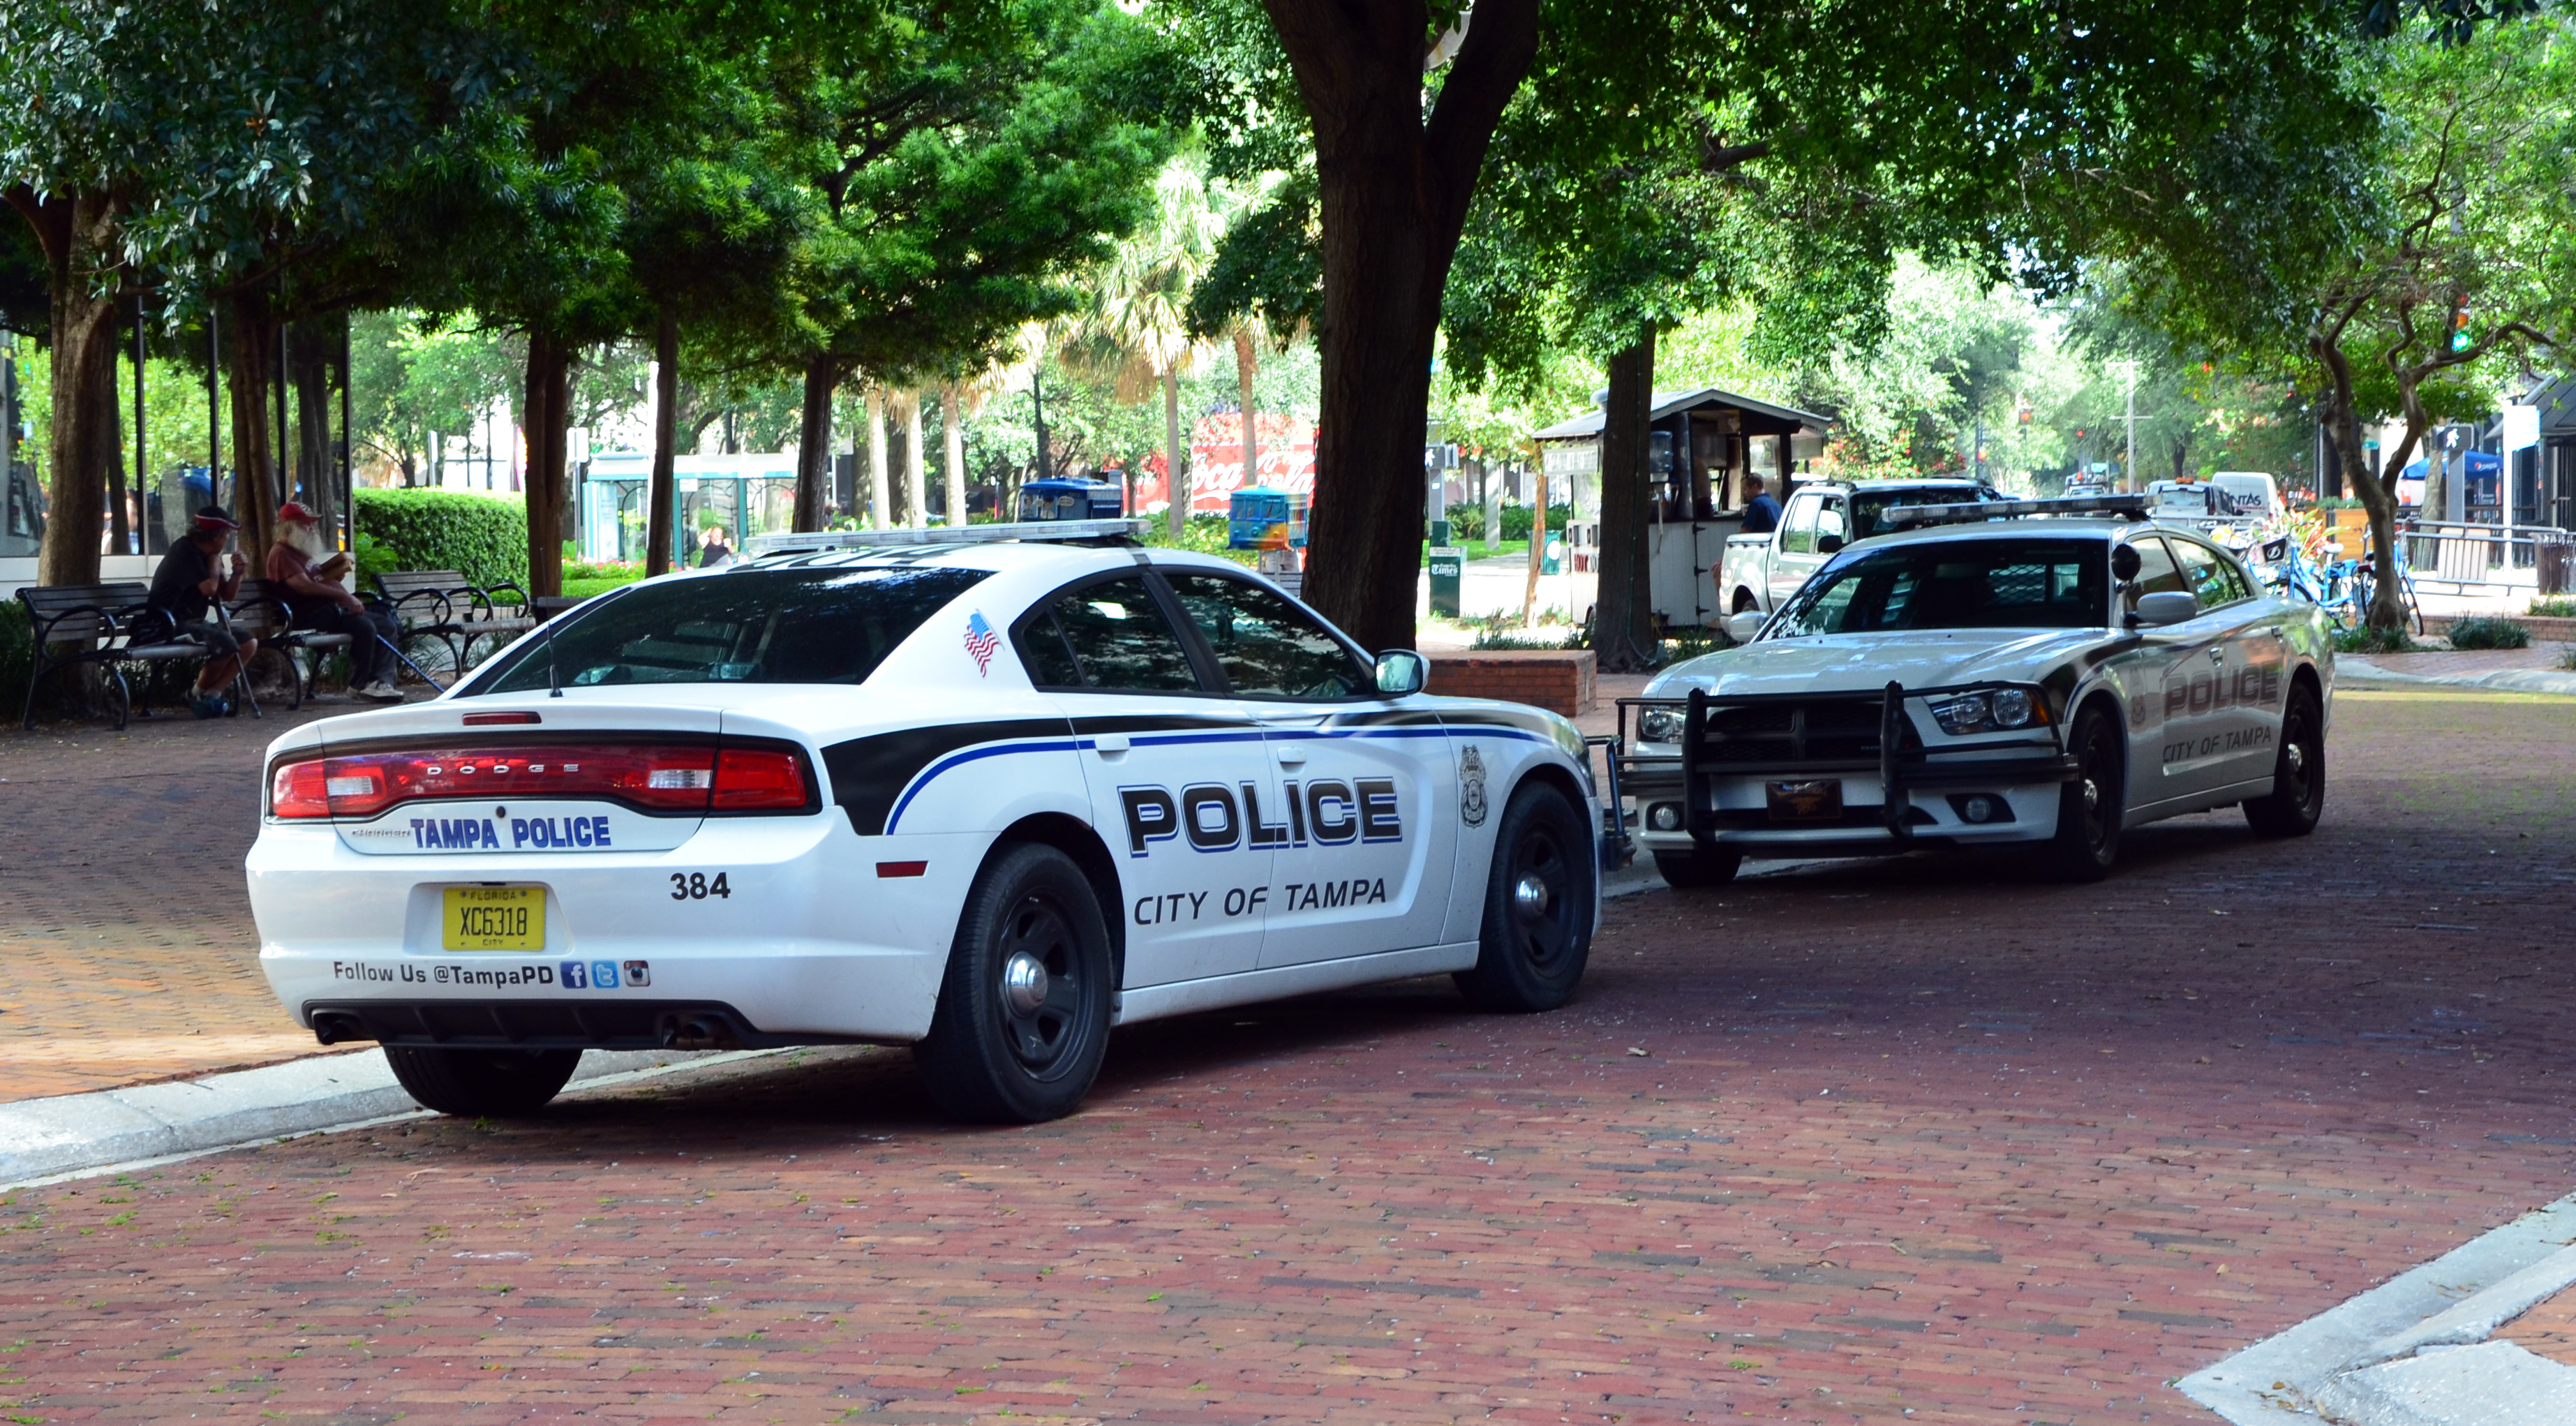 File:Dodge Charger Tampa Police 2